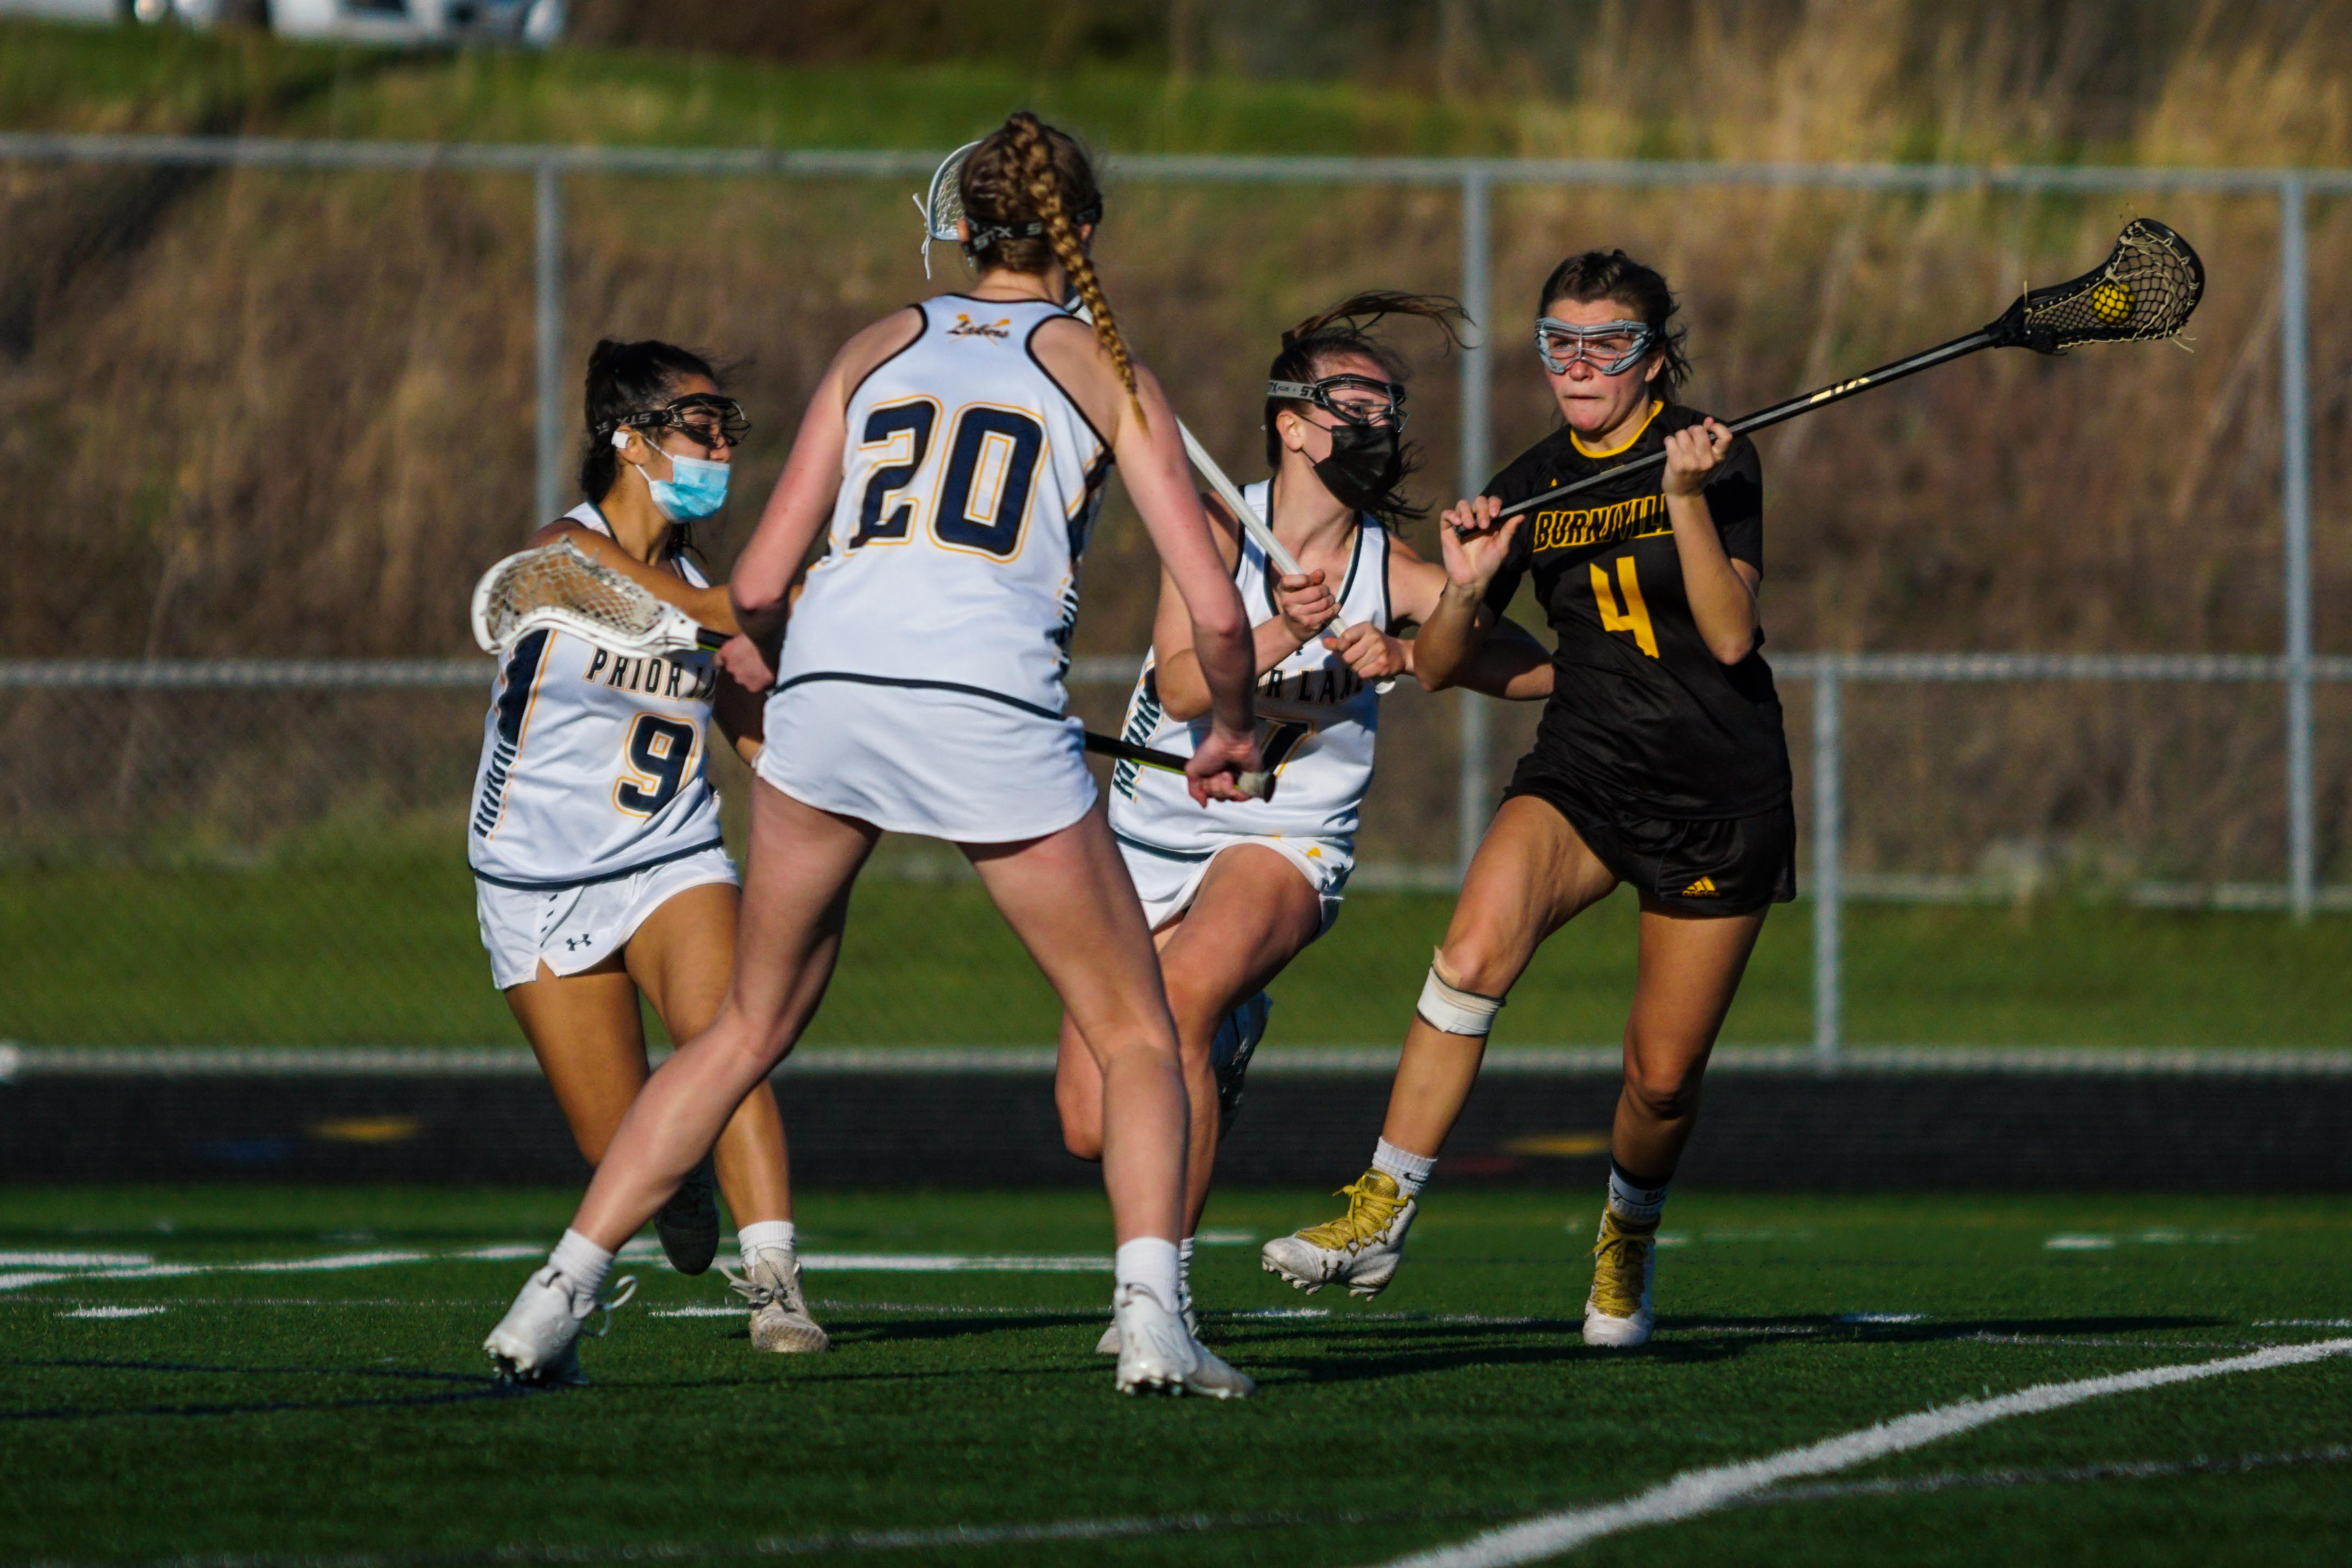 Apple Valley/Burnsville's Taiva Reinertson (4) is swarmed by Prior Lake defenders during a matchup Thursday. Reinertson had two of her team's goals in a 16-3 loss to Prior Lake. Photo by Korey McDermott, SportsEngine